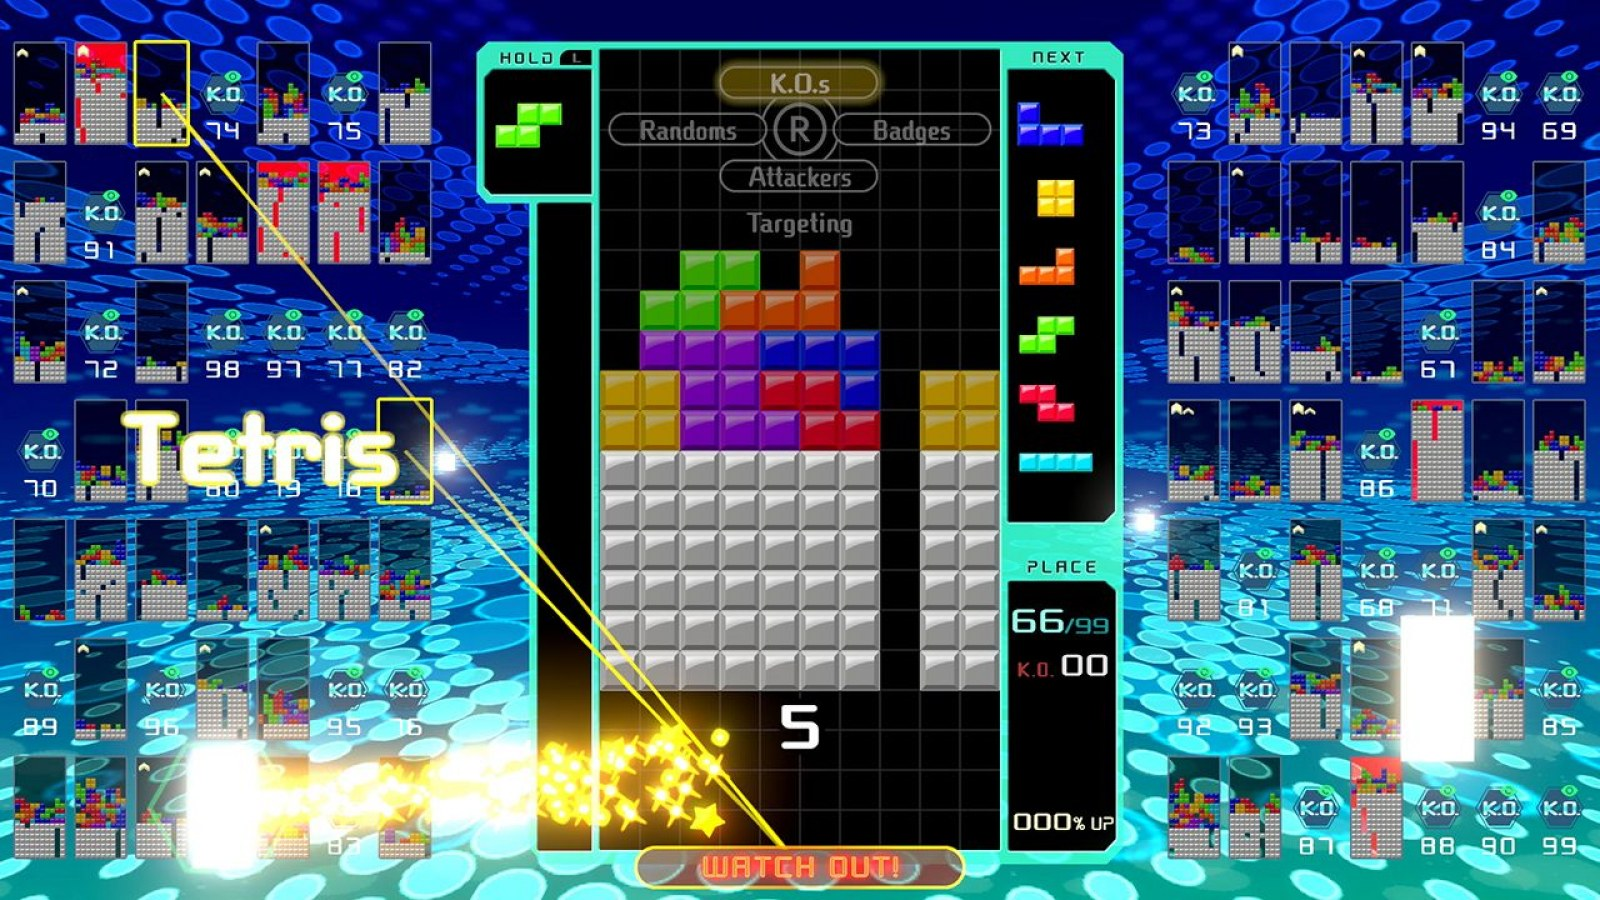 Tetris 99' How to Play: Rules, Switch Controls, Badges and Tips for